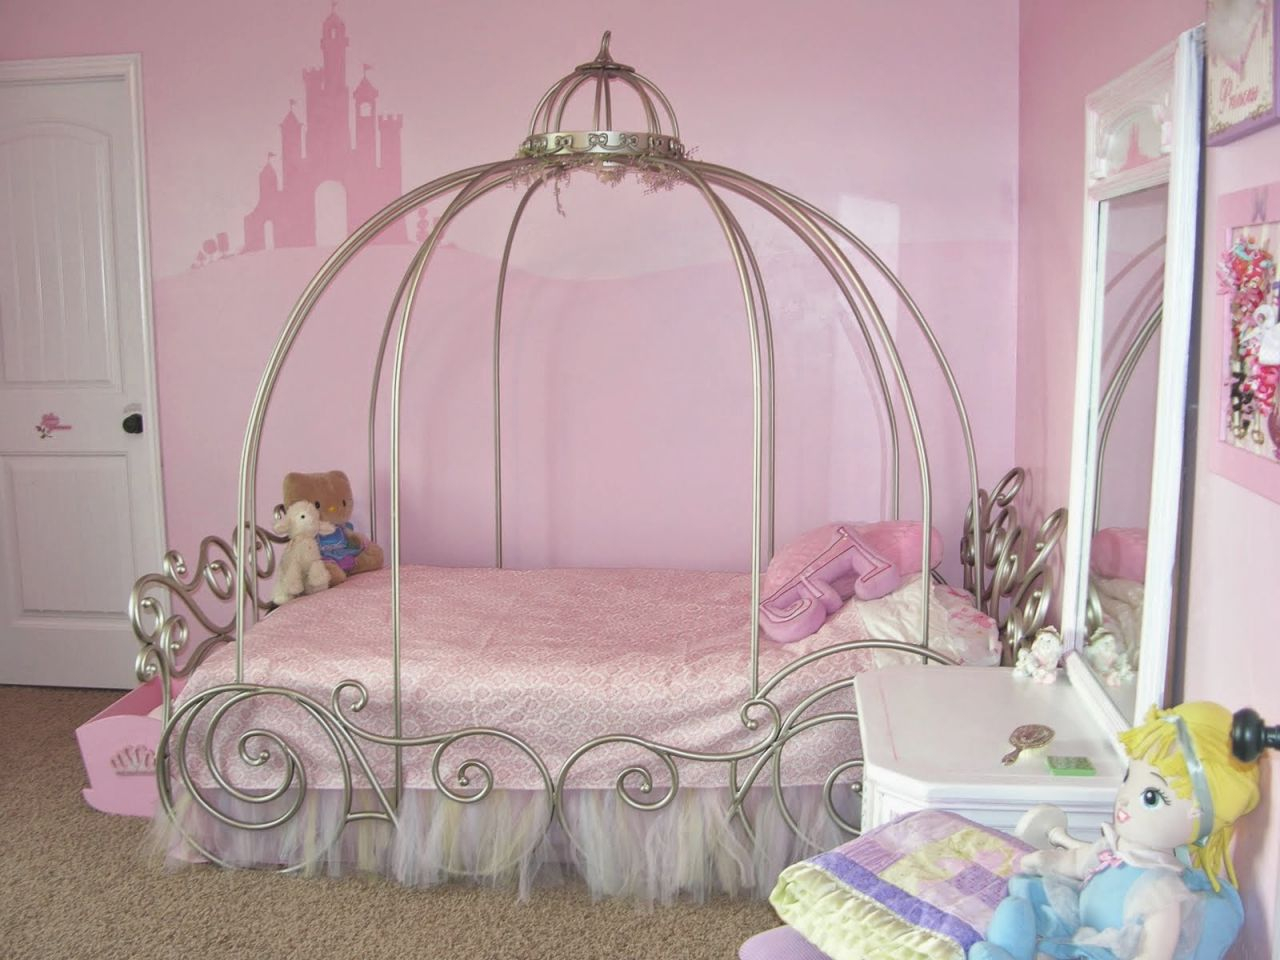 Design Ideas For A Little Girl's Bedroom | Home Decor for Decoration Ideas For Little Girl Bedrooms